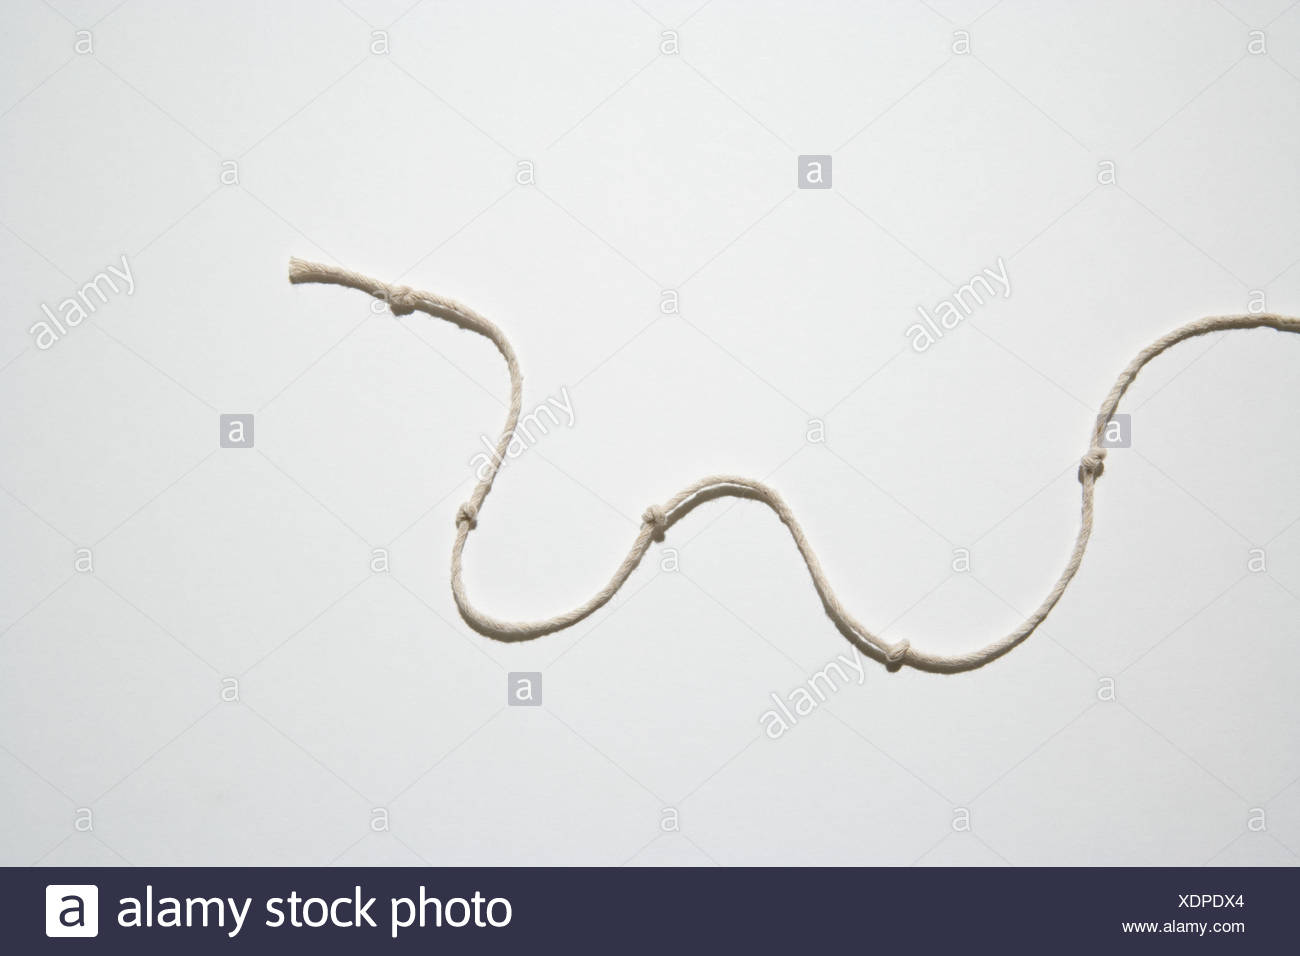 Knotted string in a curved shape - Stock Image